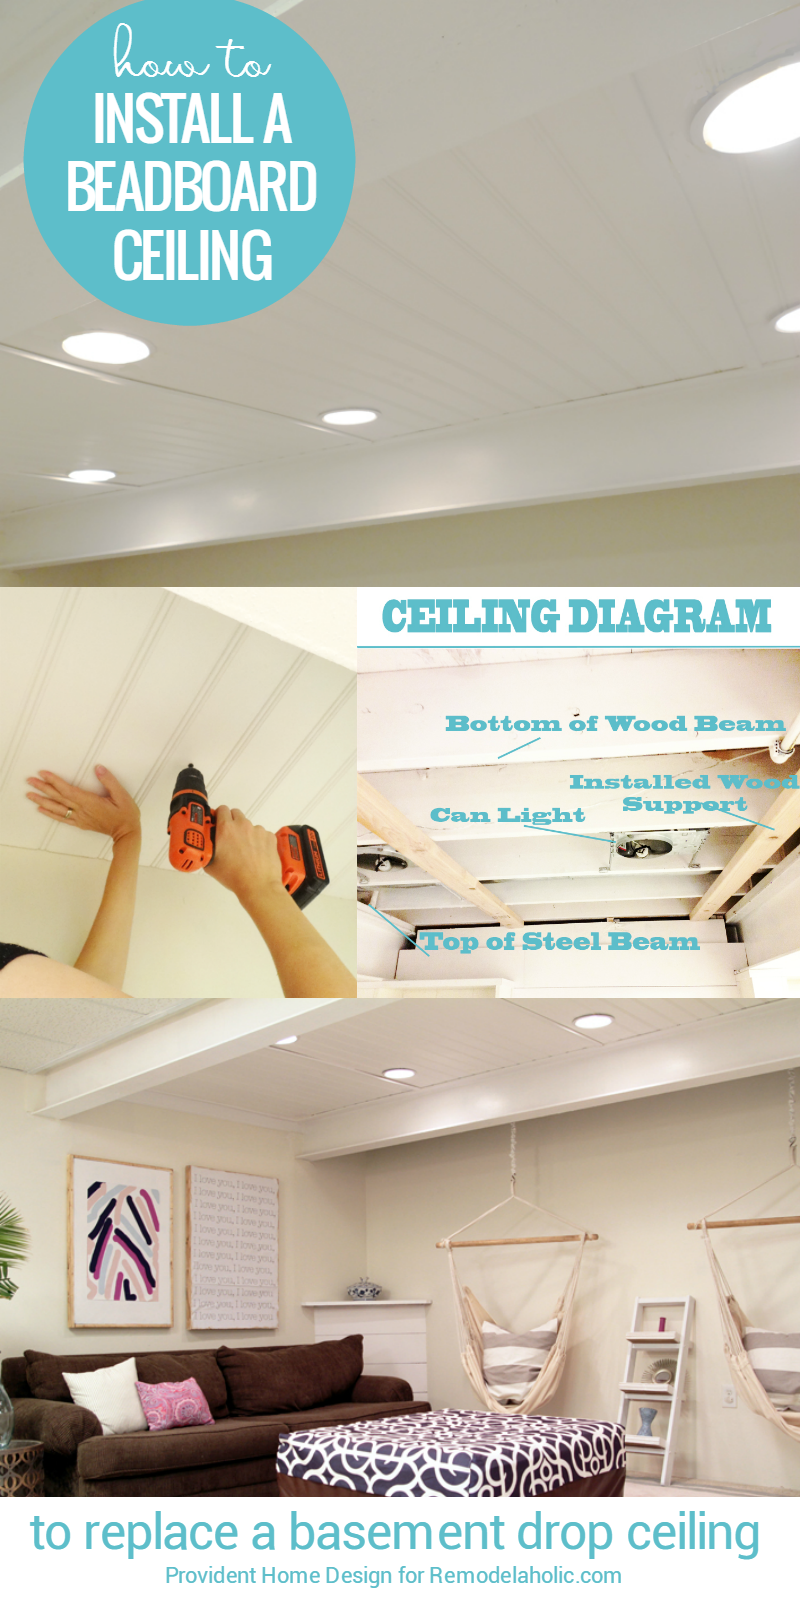 Remodelaholic diy beadboard ceiling to replace a basement drop how to install a basement beadboard ceiling to replace a drop ceiling tutorial from provident dailygadgetfo Gallery